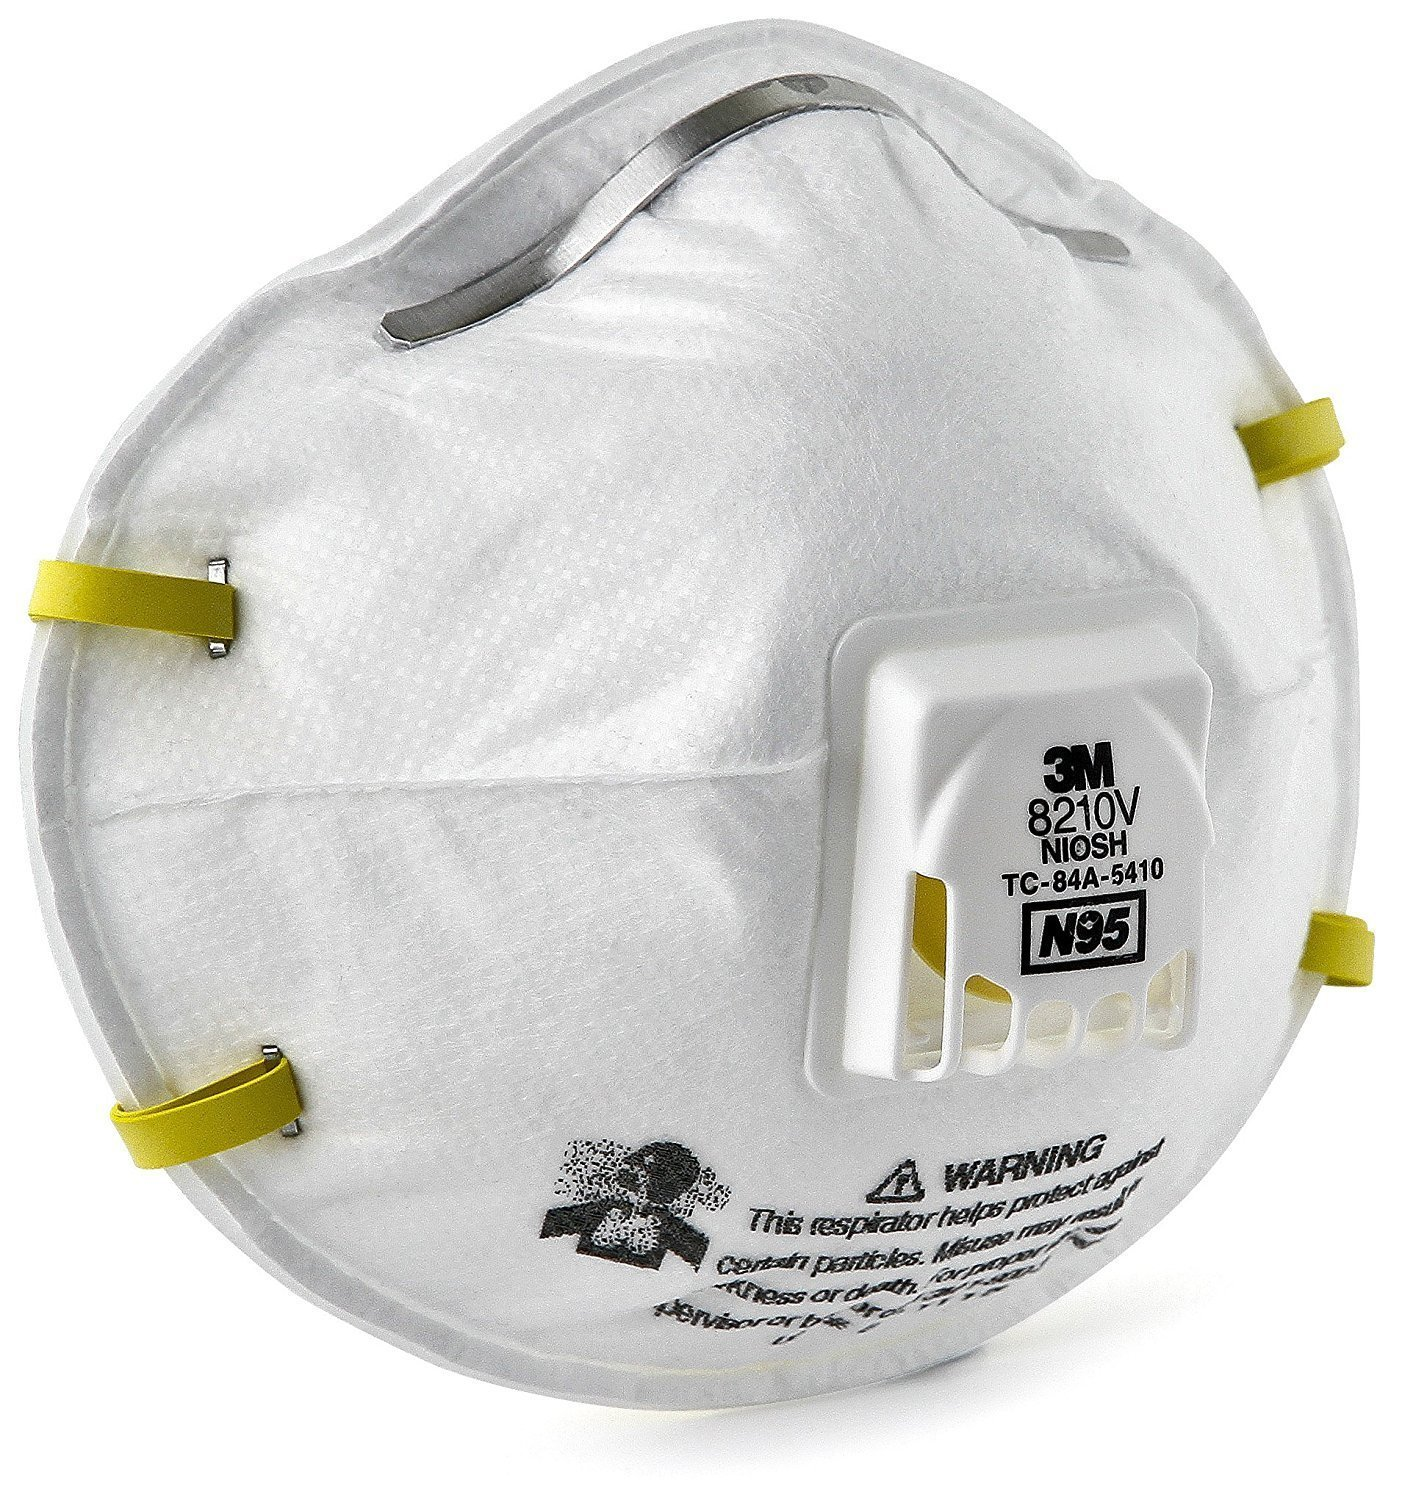 3M 8210V Particulate Respirator, N95 Exhalation Valve, Respiratory Protection, 120 Dust Masks (Case of 12) by 3M